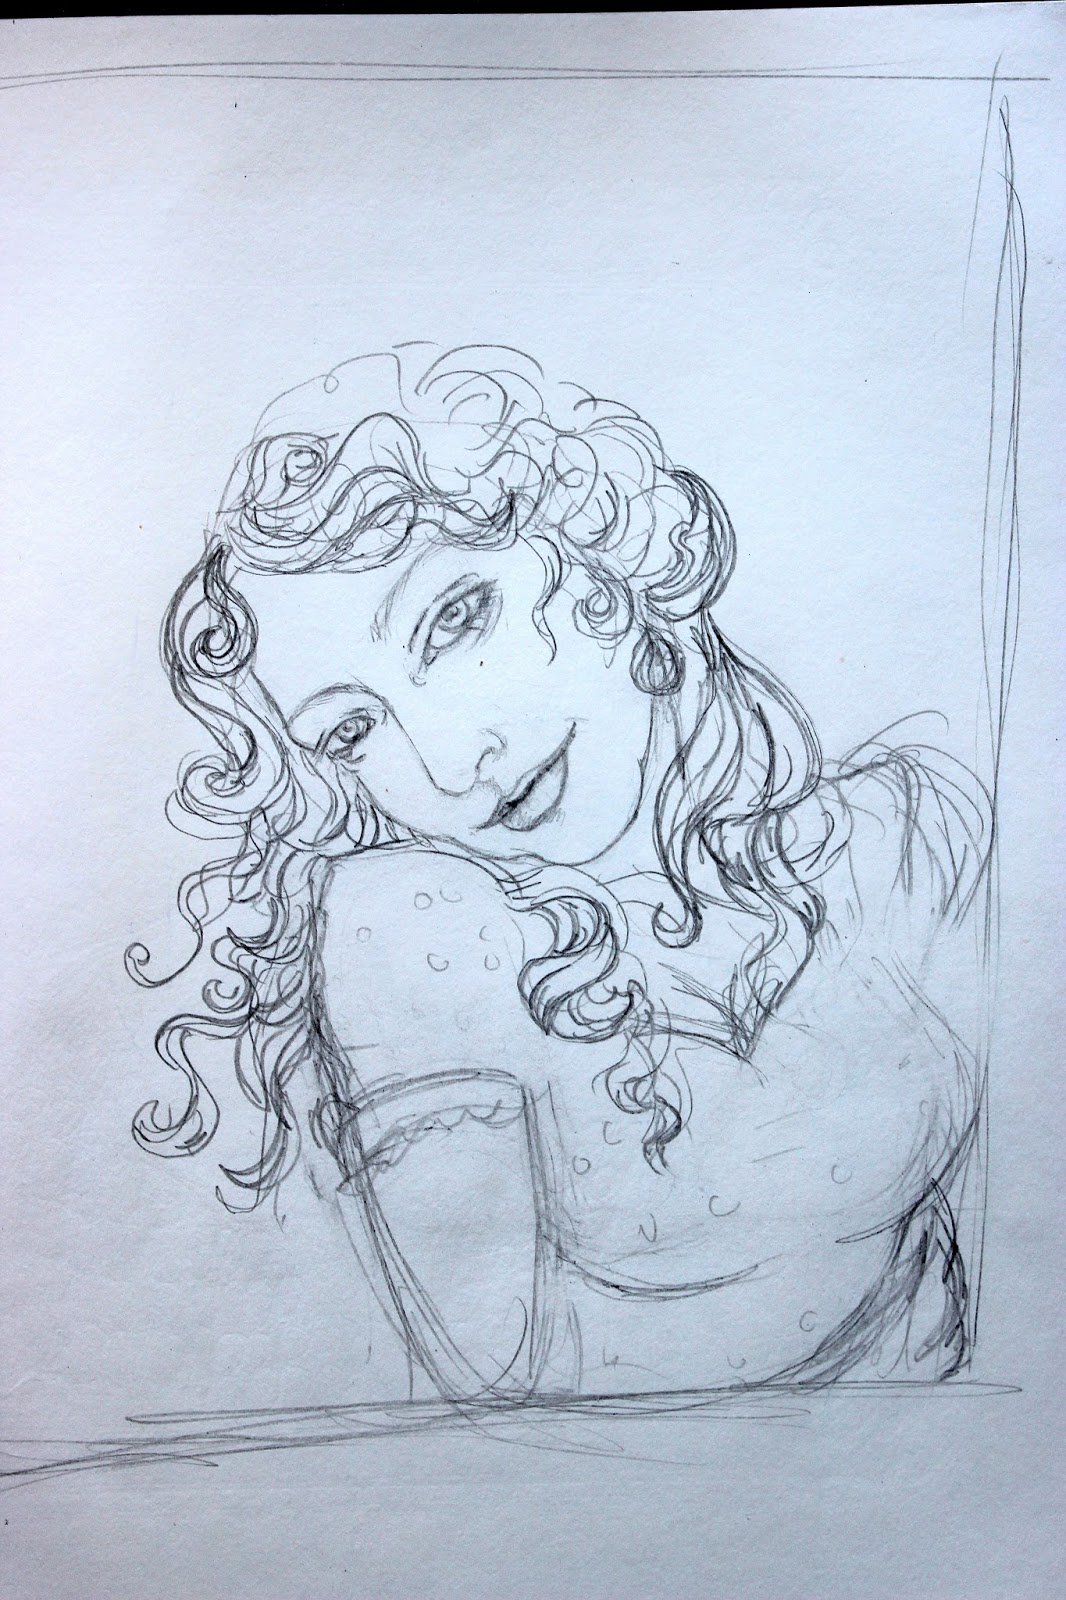 Sketchpad Notebook Sketch Drawing Pencil Portrait Busty Girl